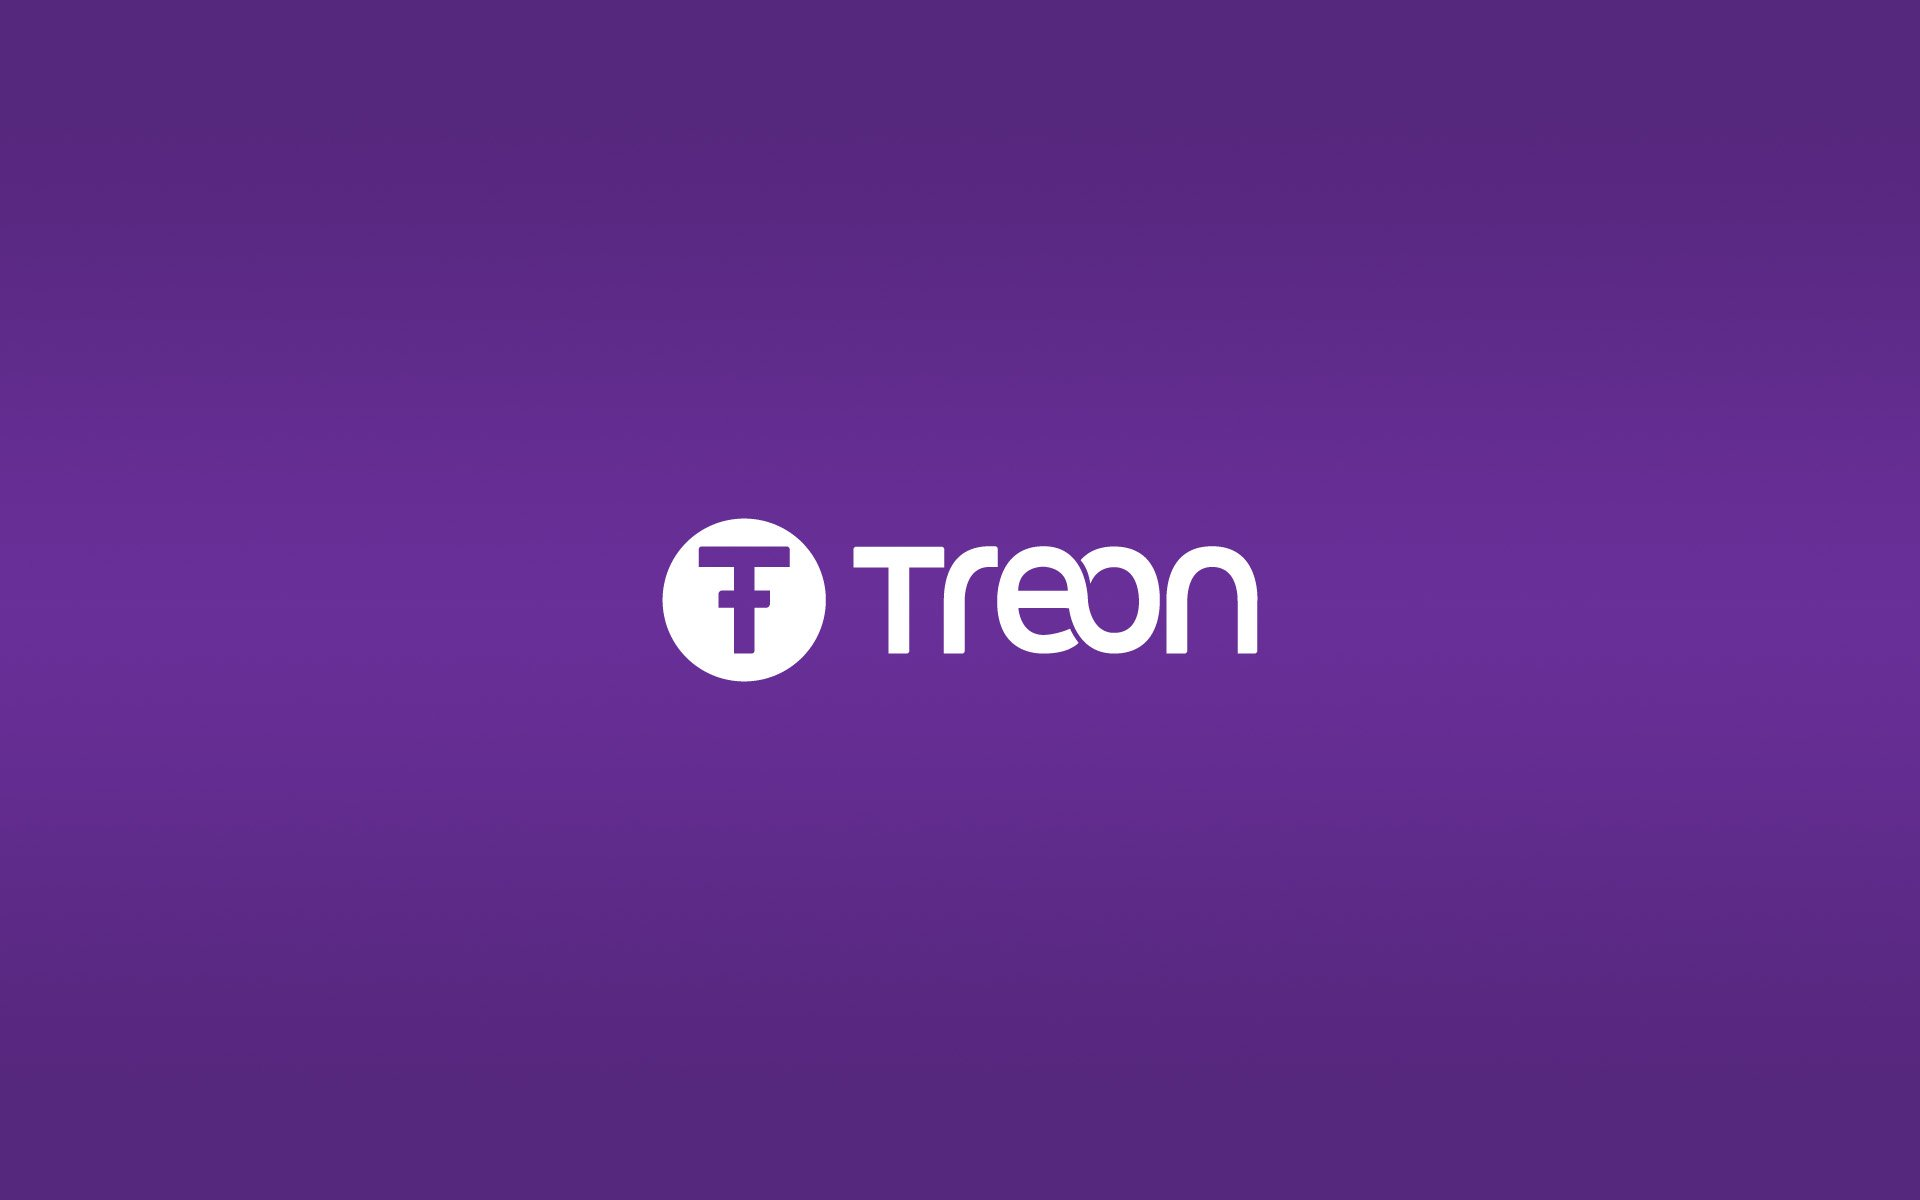 Treon - The First Tokenized Universal Utility Payment Platform Based on The Blockchain is Set to Launch The ICO Pre-Sale on May 21st